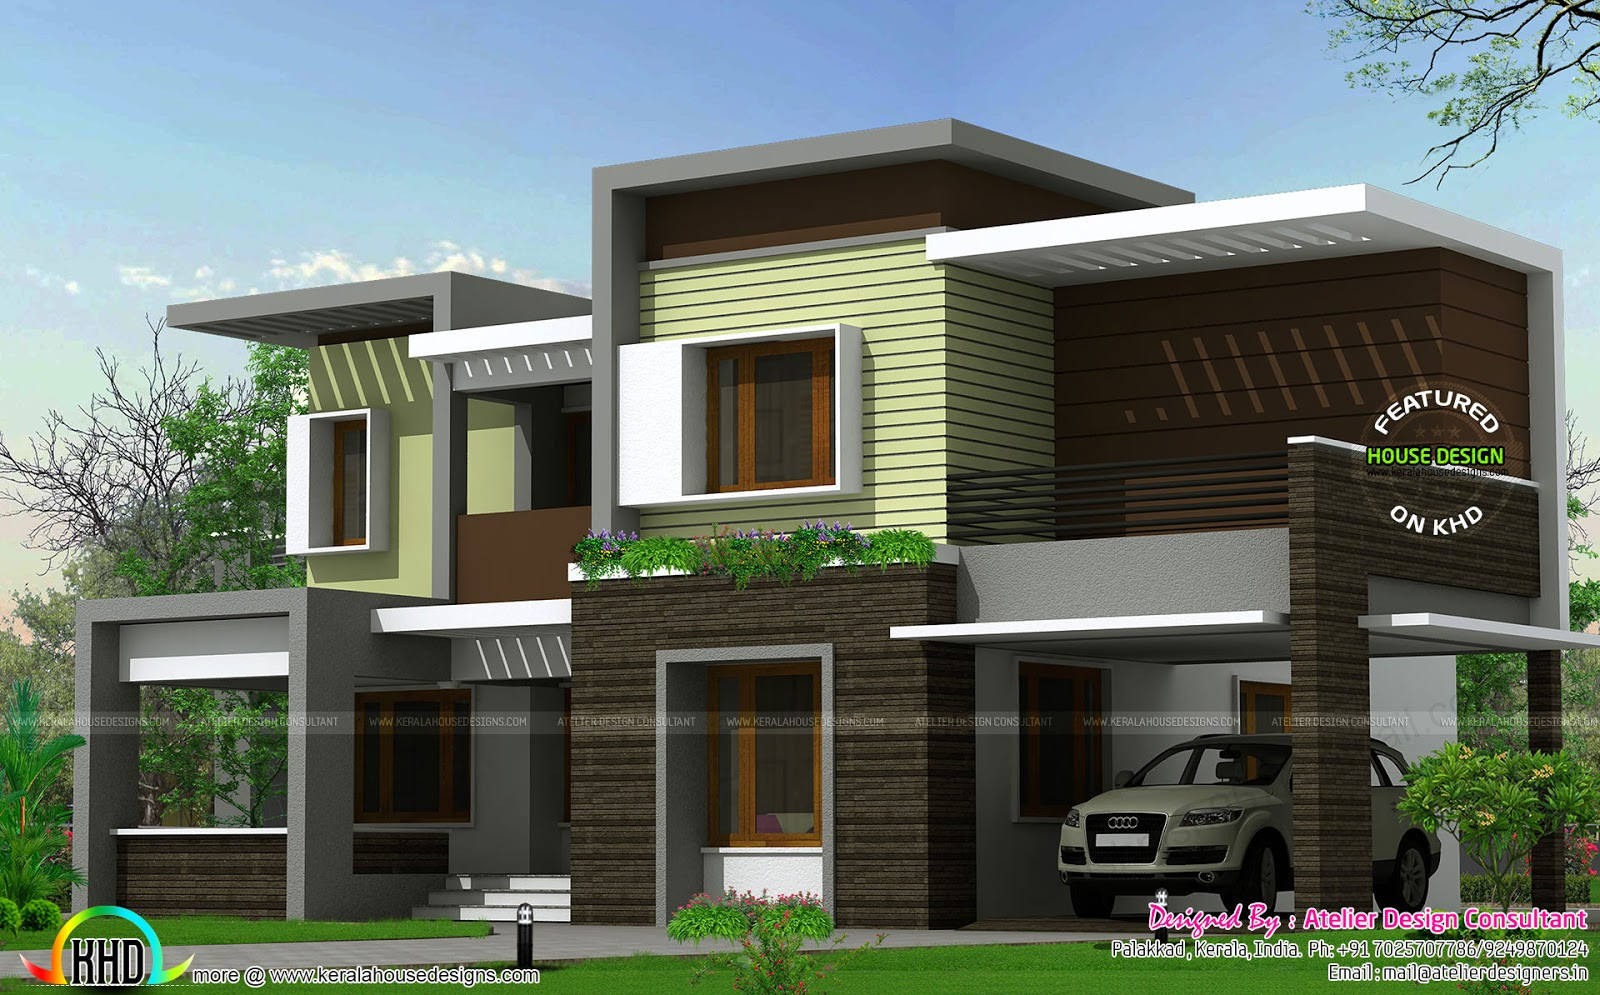 Box type house designs house design for Types house designs